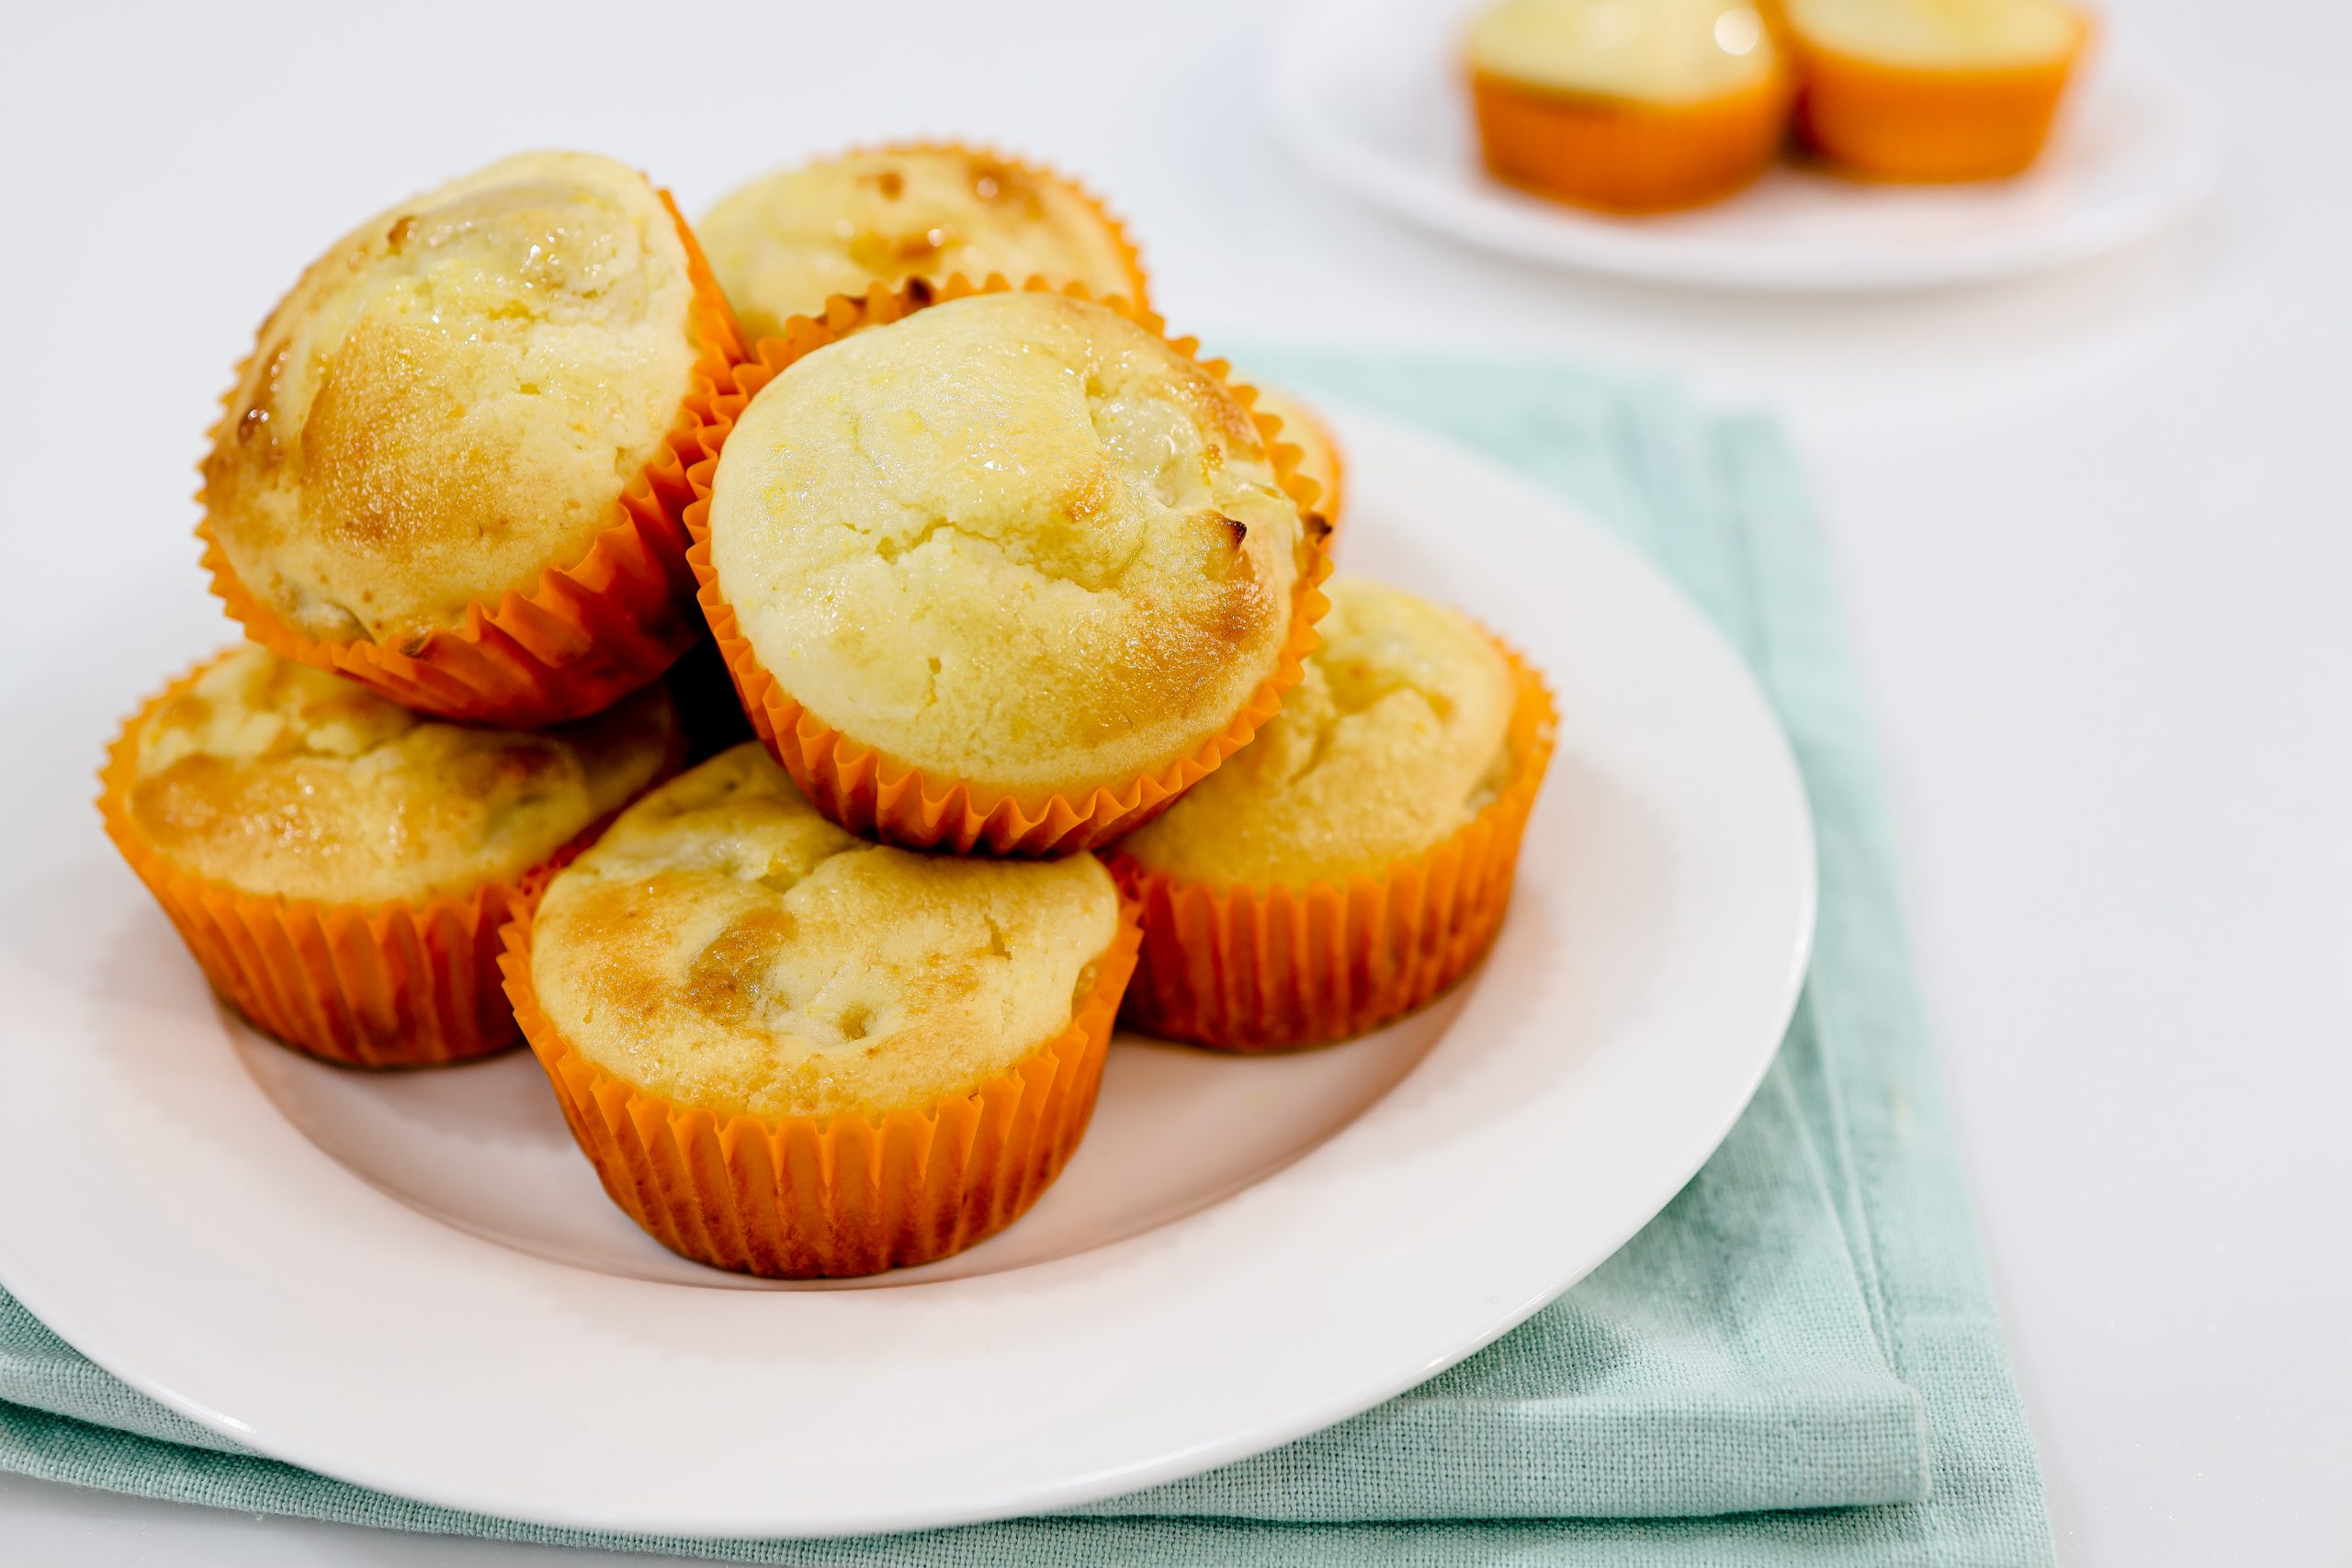 Orange Pineapple Muffin